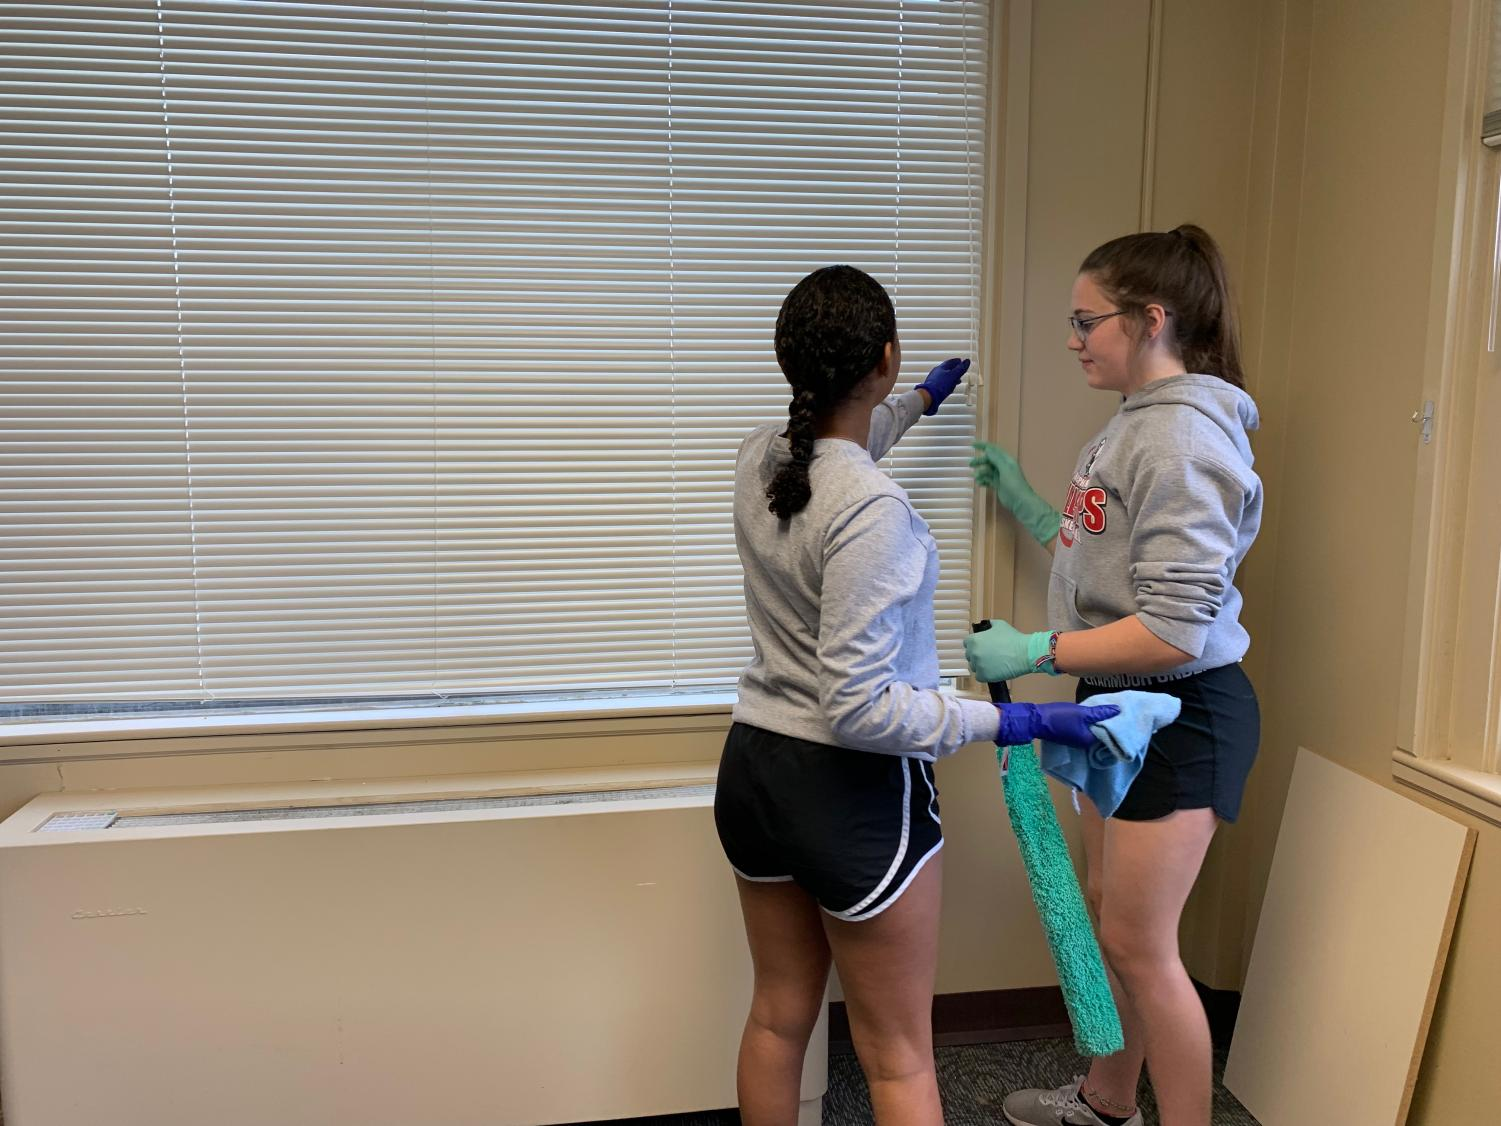 Jaice+Holler+and+Arriana+Gross+are+working+together+to+clean+the+windows+